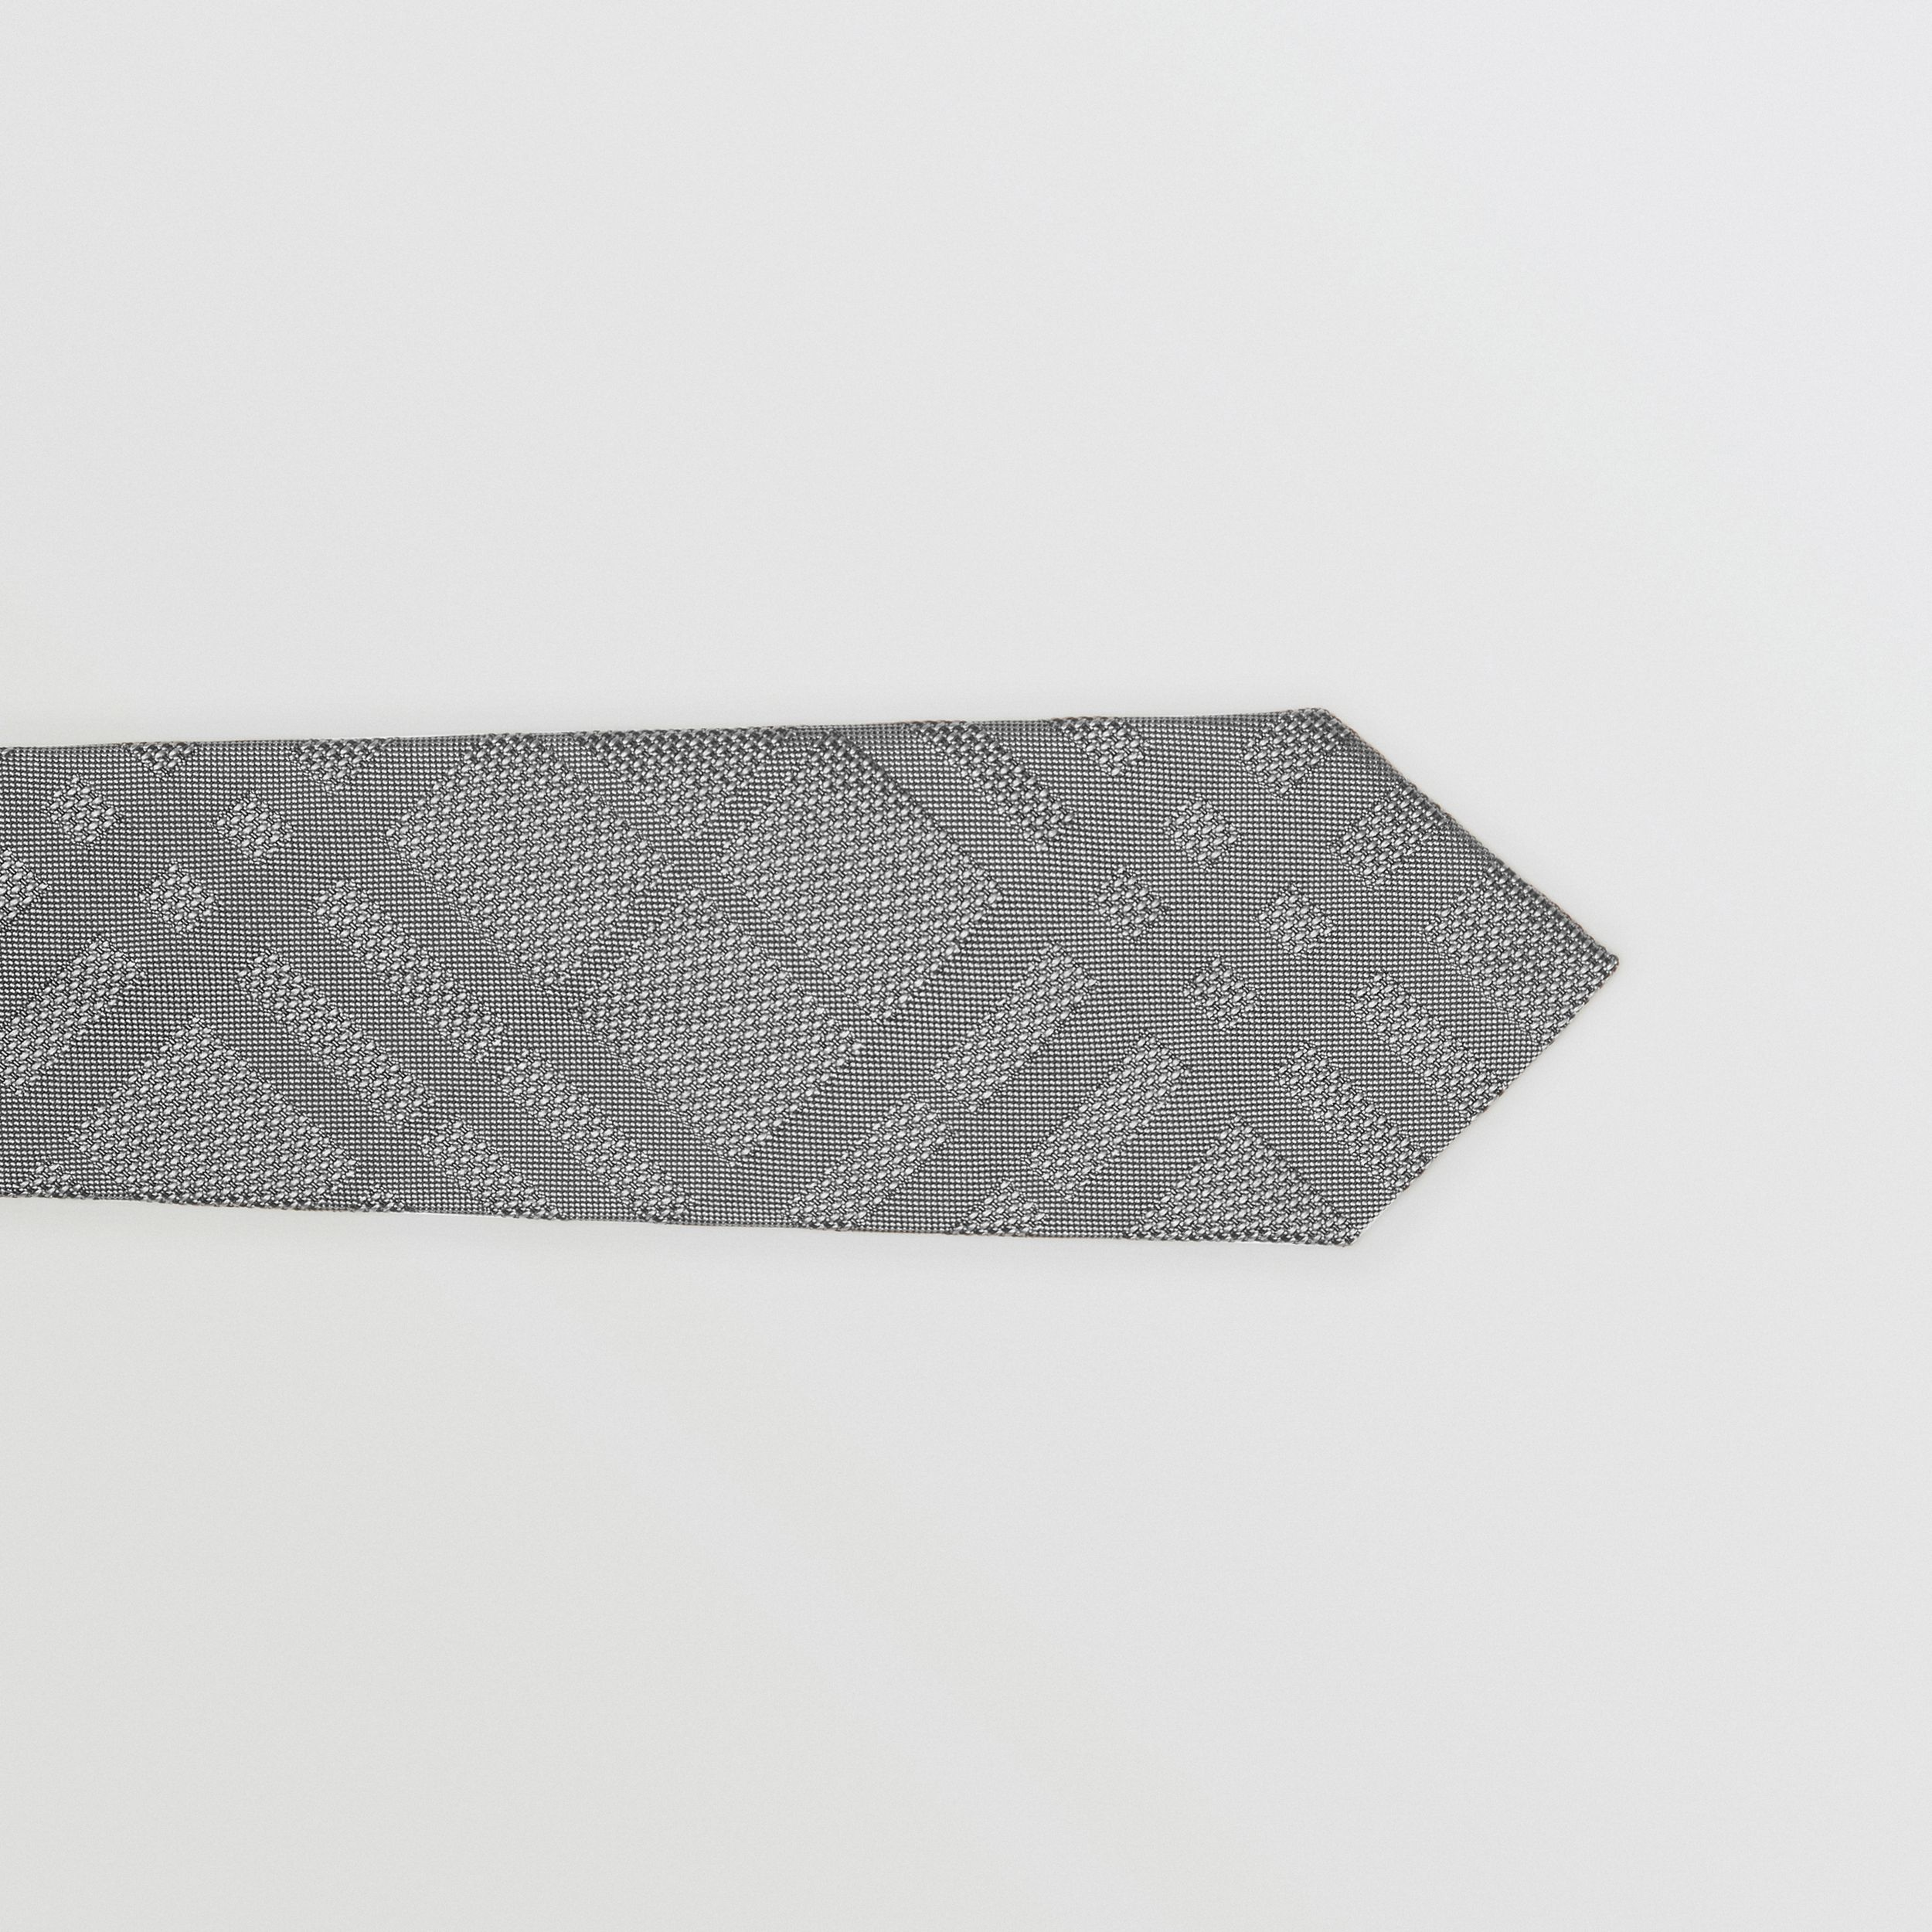 Classic Cut Check Silk Jacquard Tie in Charcoal - Men | Burberry - 2